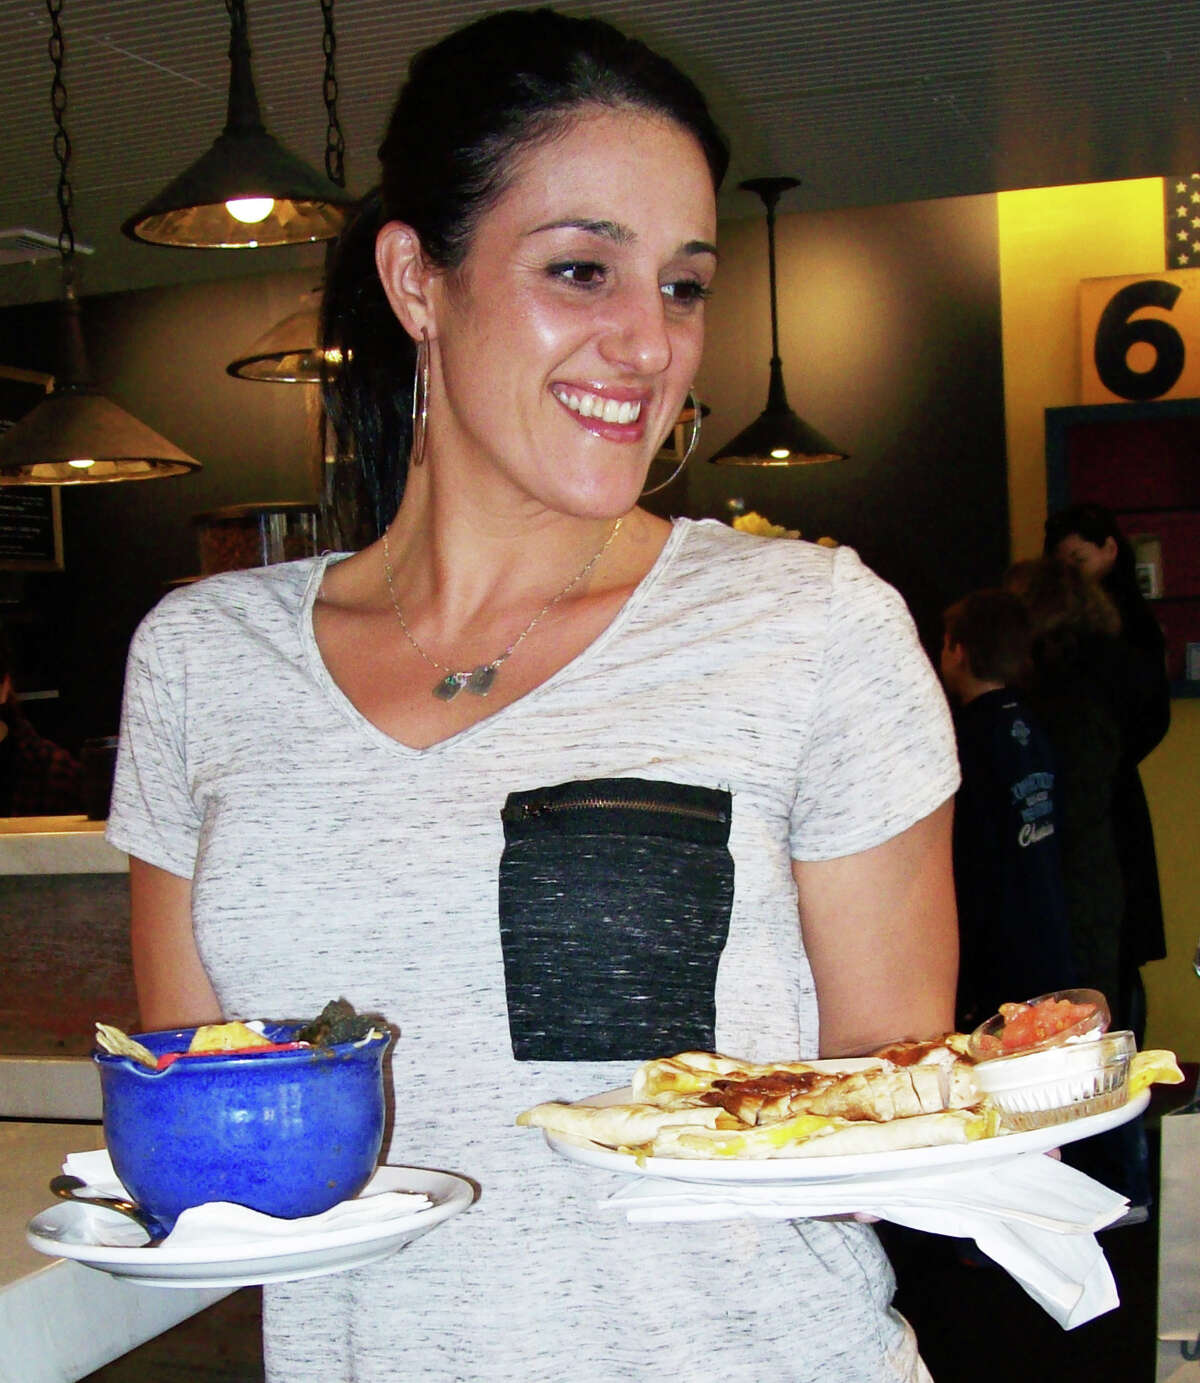 Erica Singer serves up lunch at Java, the new coffee house on Church Lane.